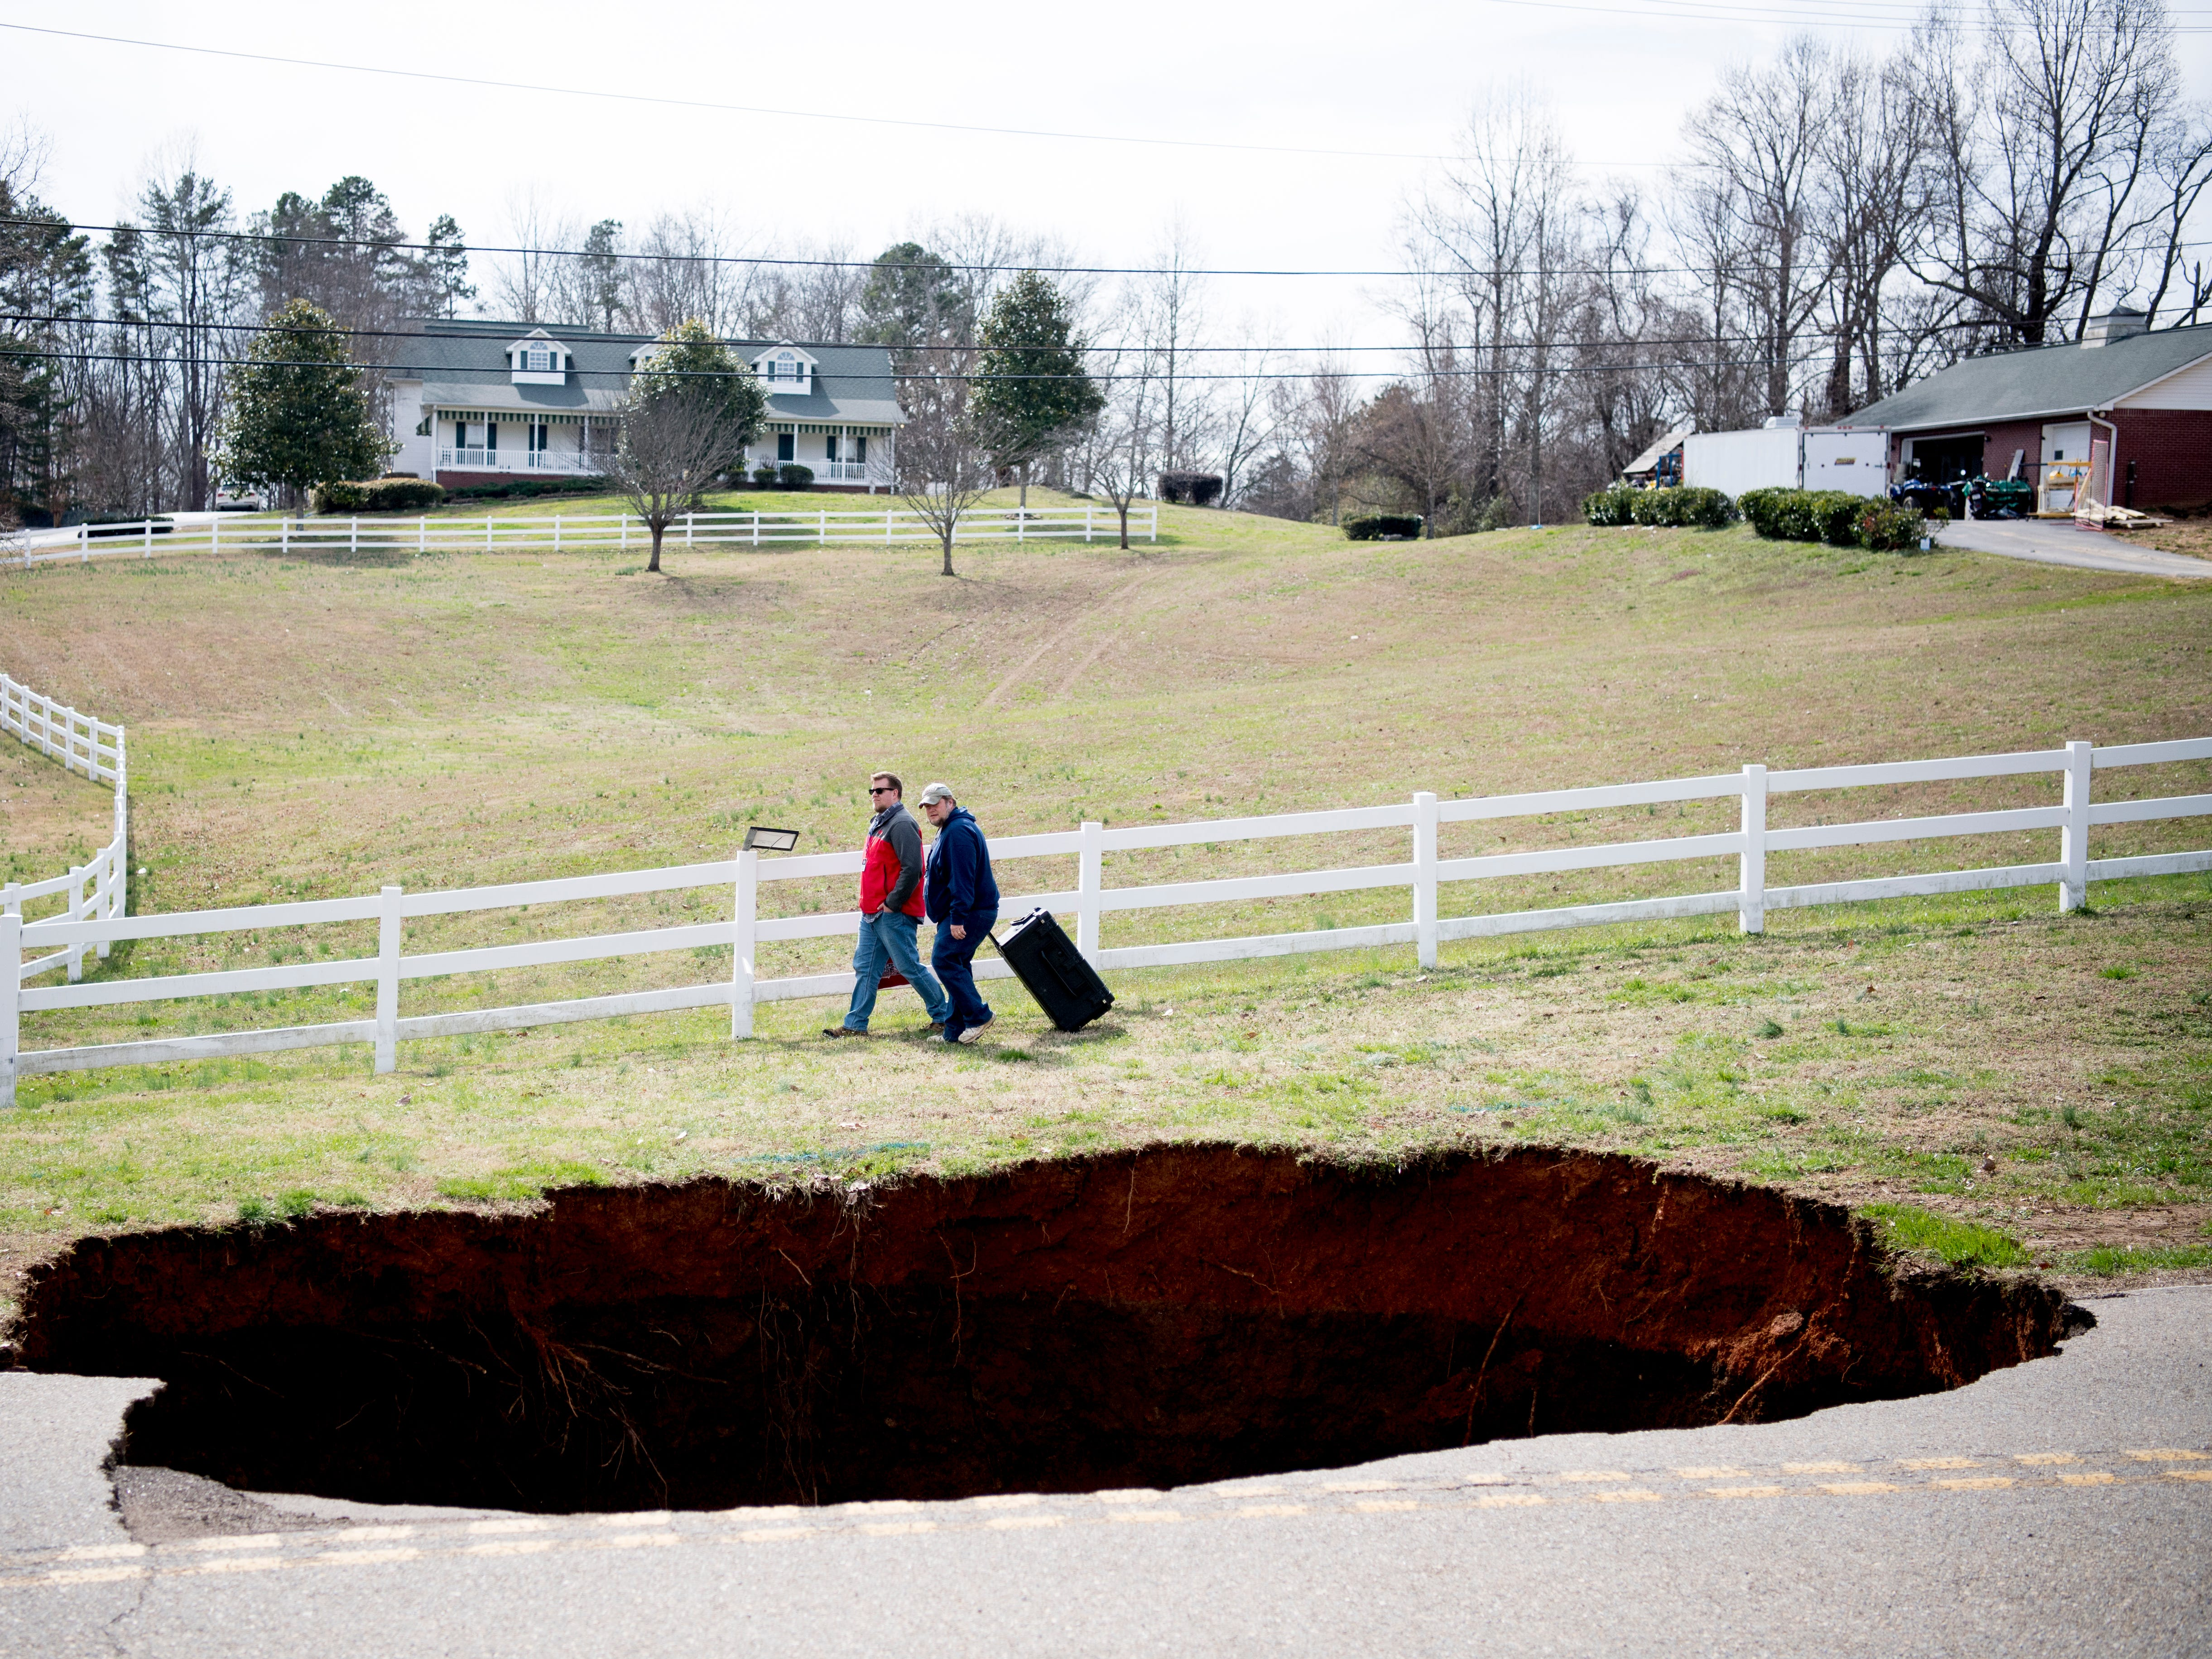 People walk past a large sinkhole on Greenwell Road in Powell, Tennessee on Tuesday, February 26, 2019. The sinkhole is estimated to be around 20 feet deep.